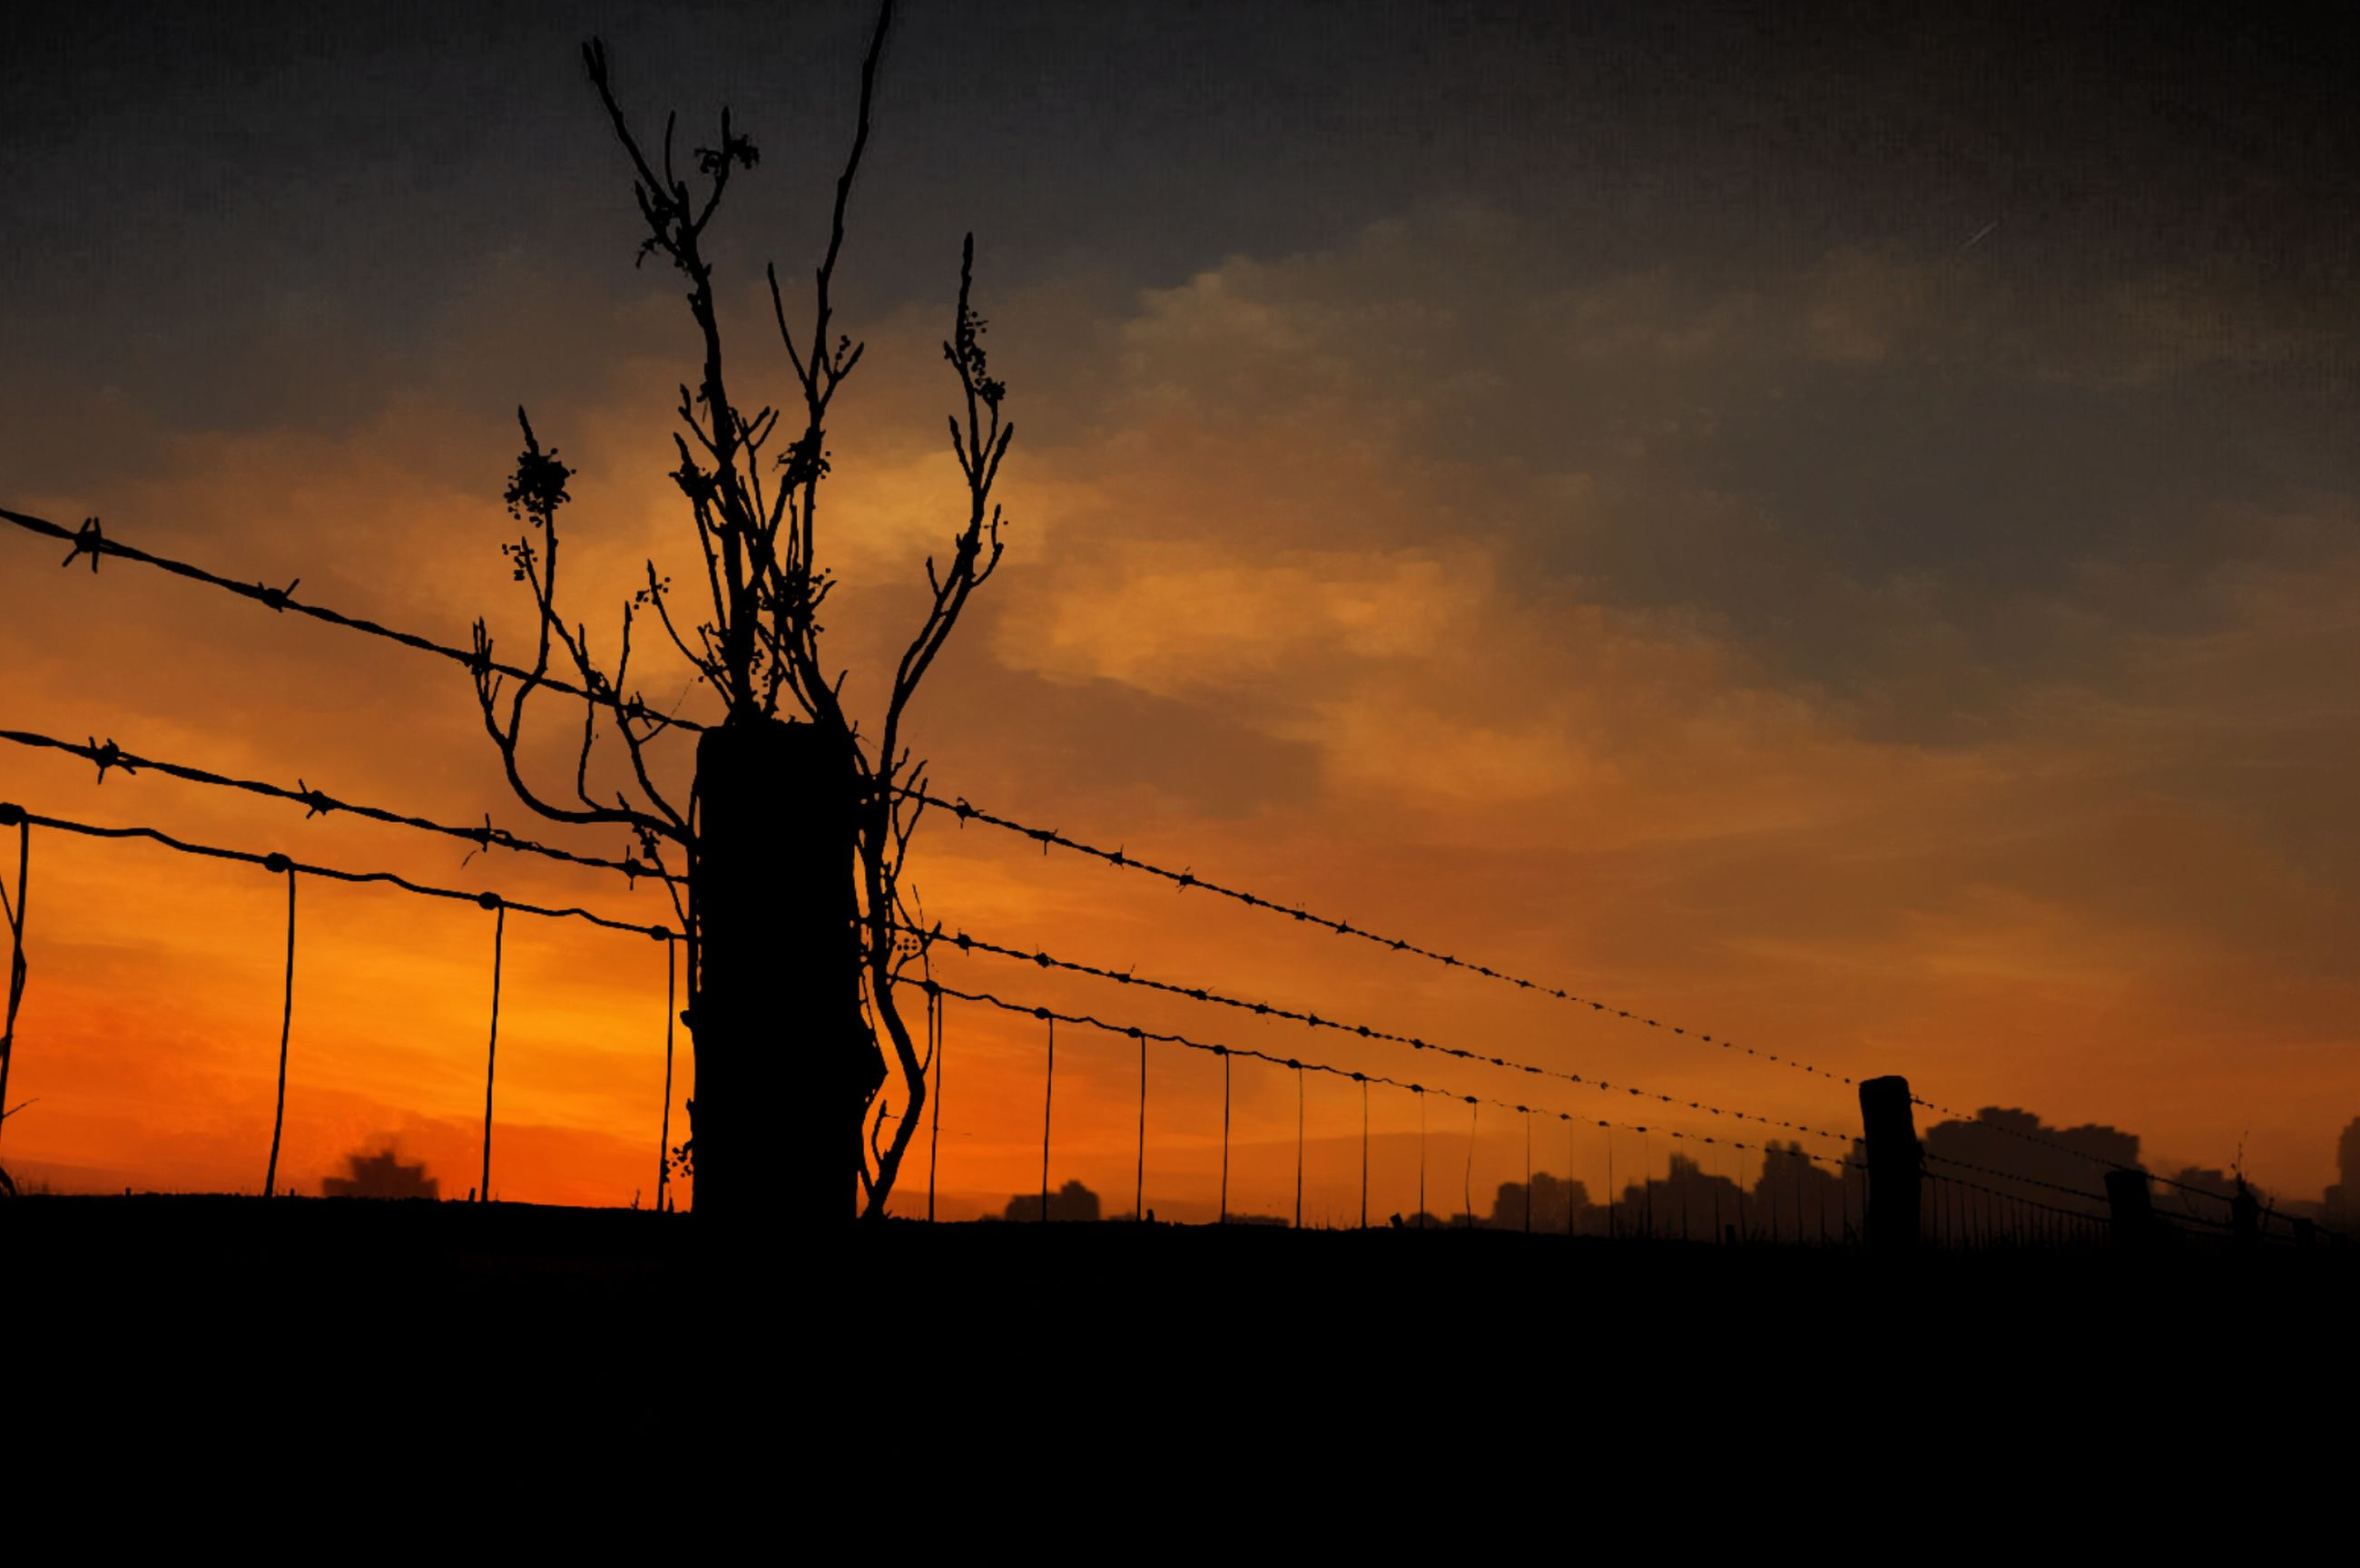 sunset, silhouette, orange color, sky, power line, electricity pylon, beauty in nature, nature, scenics, tranquility, power supply, connection, electricity, dark, fence, landscape, tranquil scene, low angle view, cloud - sky, no people